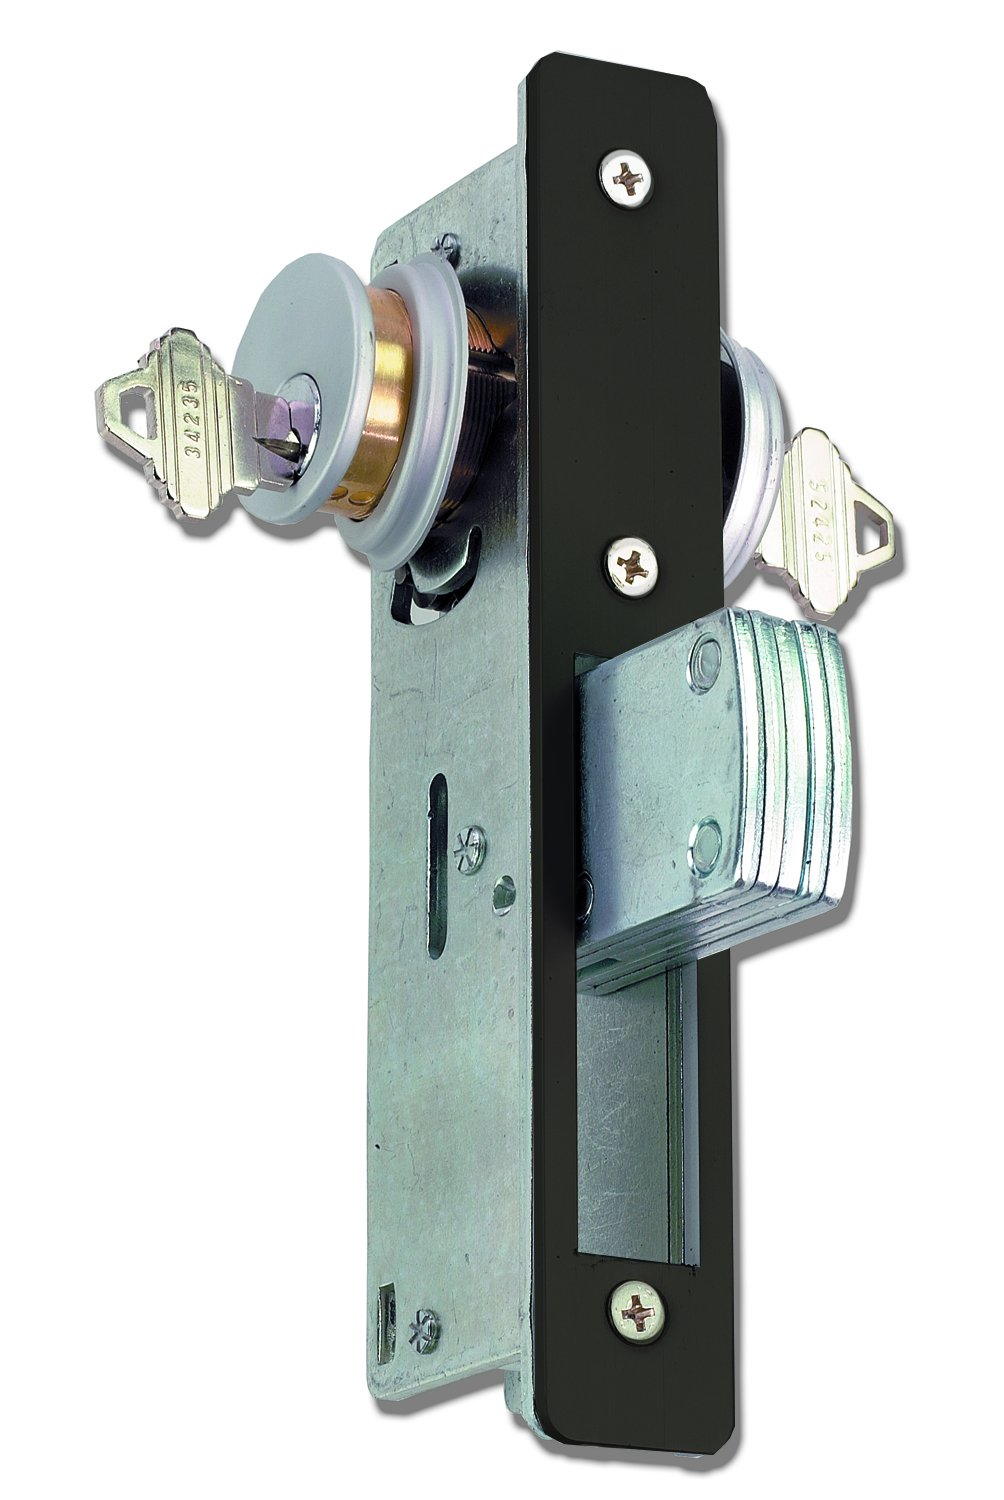 9f36fcd0cba2 Global Door Controls 1-1/8 in. Mortise Lock Body with Deadbolt ...